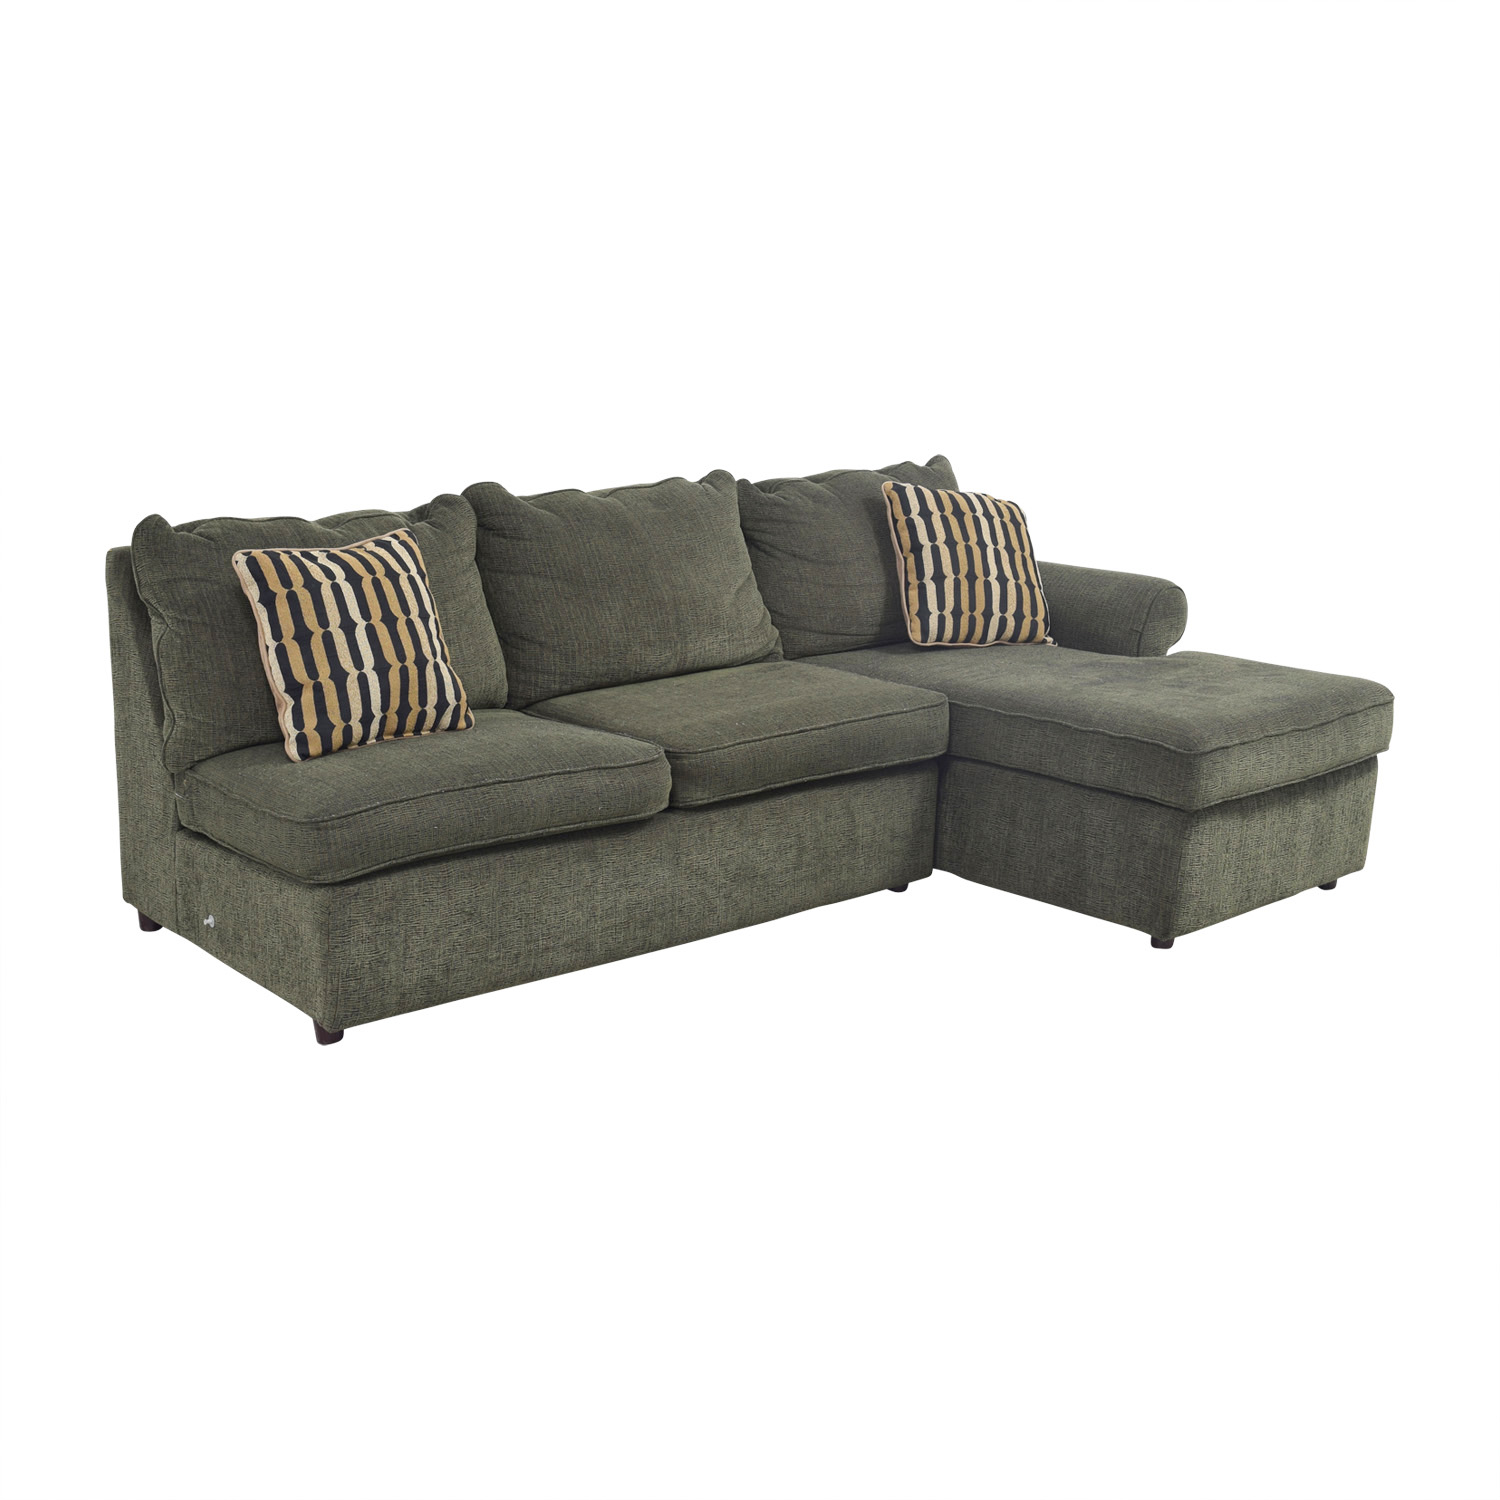 Outstanding 78 Off La Z Boy La Z Boy Forest Green L Shaped Sectional Couch Sofas Bralicious Painted Fabric Chair Ideas Braliciousco